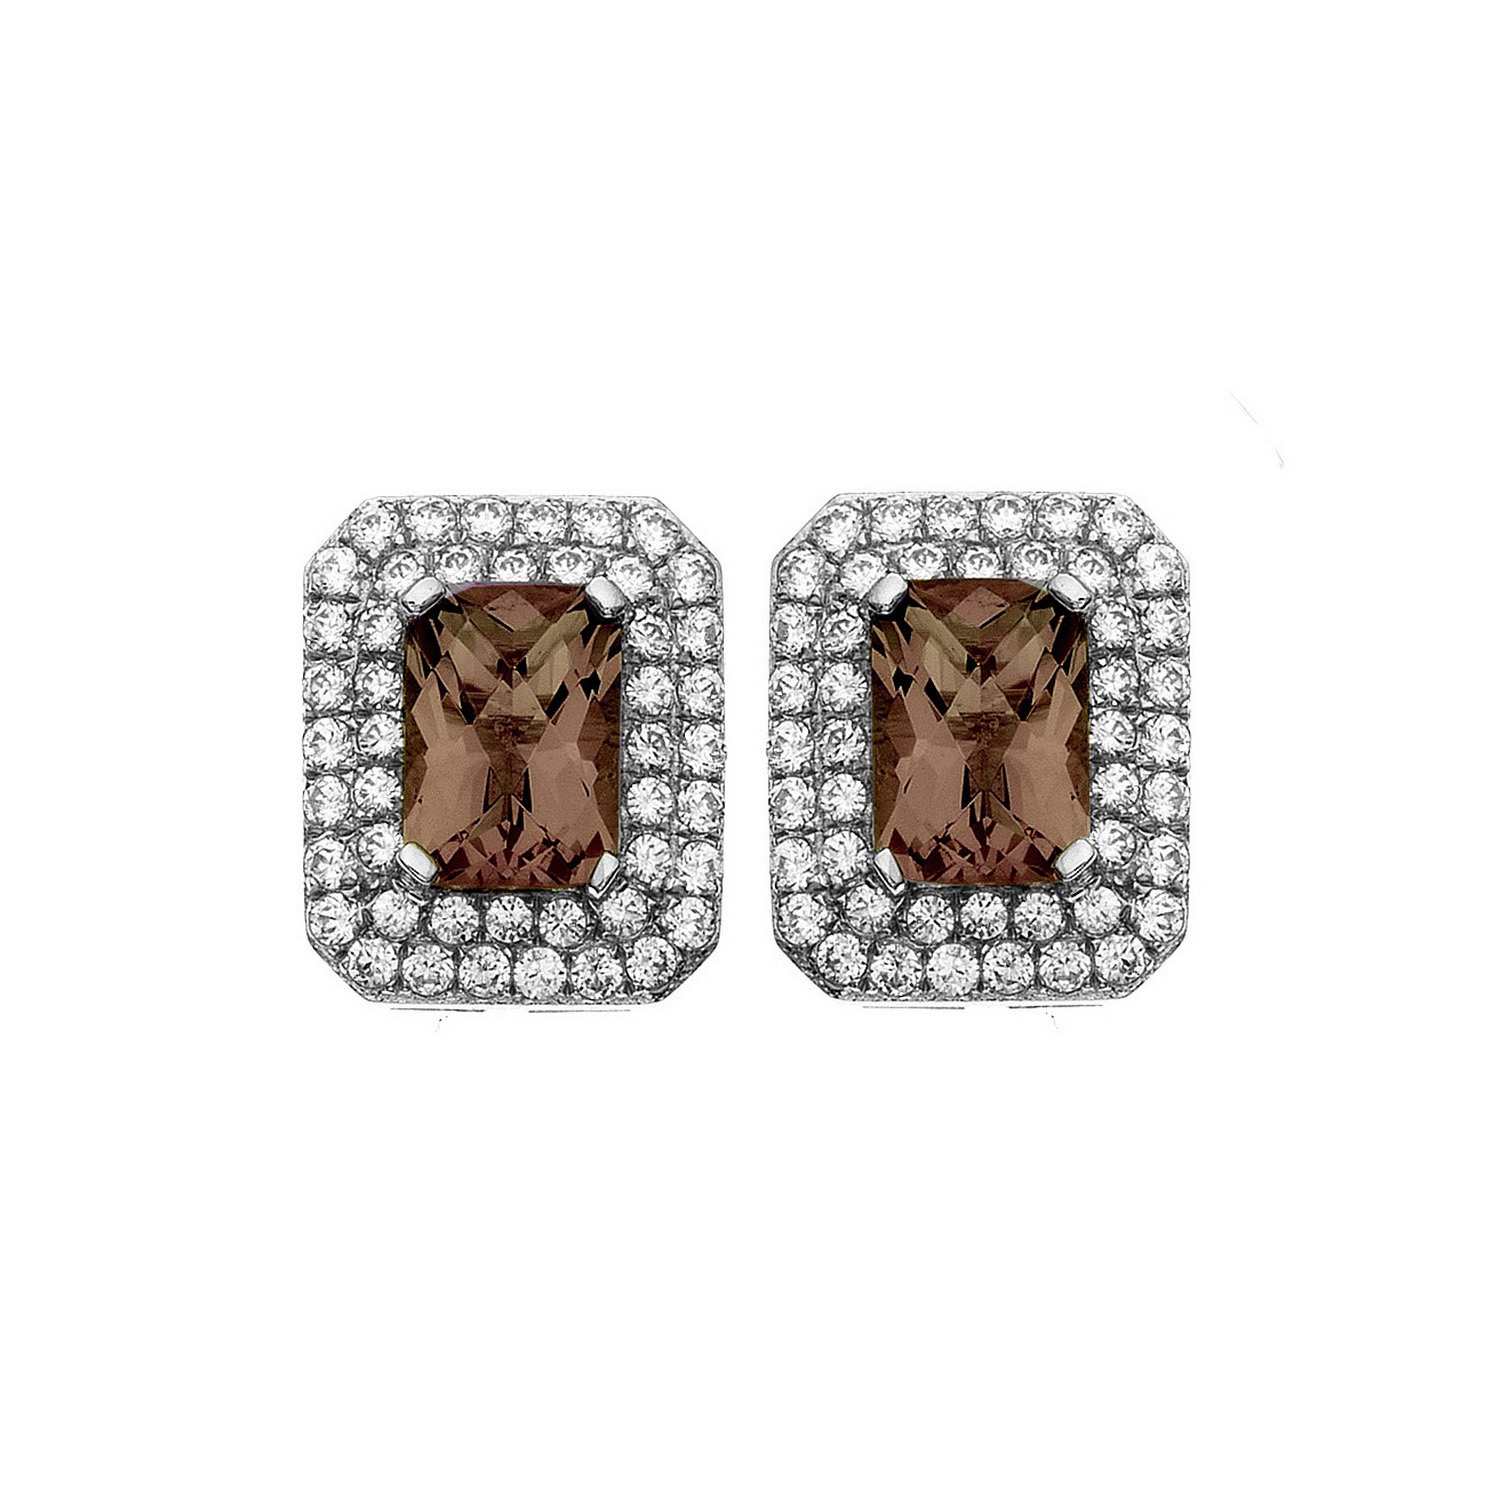 Platinum-Plated-Silver-Rectangle-Cut-Gemstone-Pave-CZ-Earring